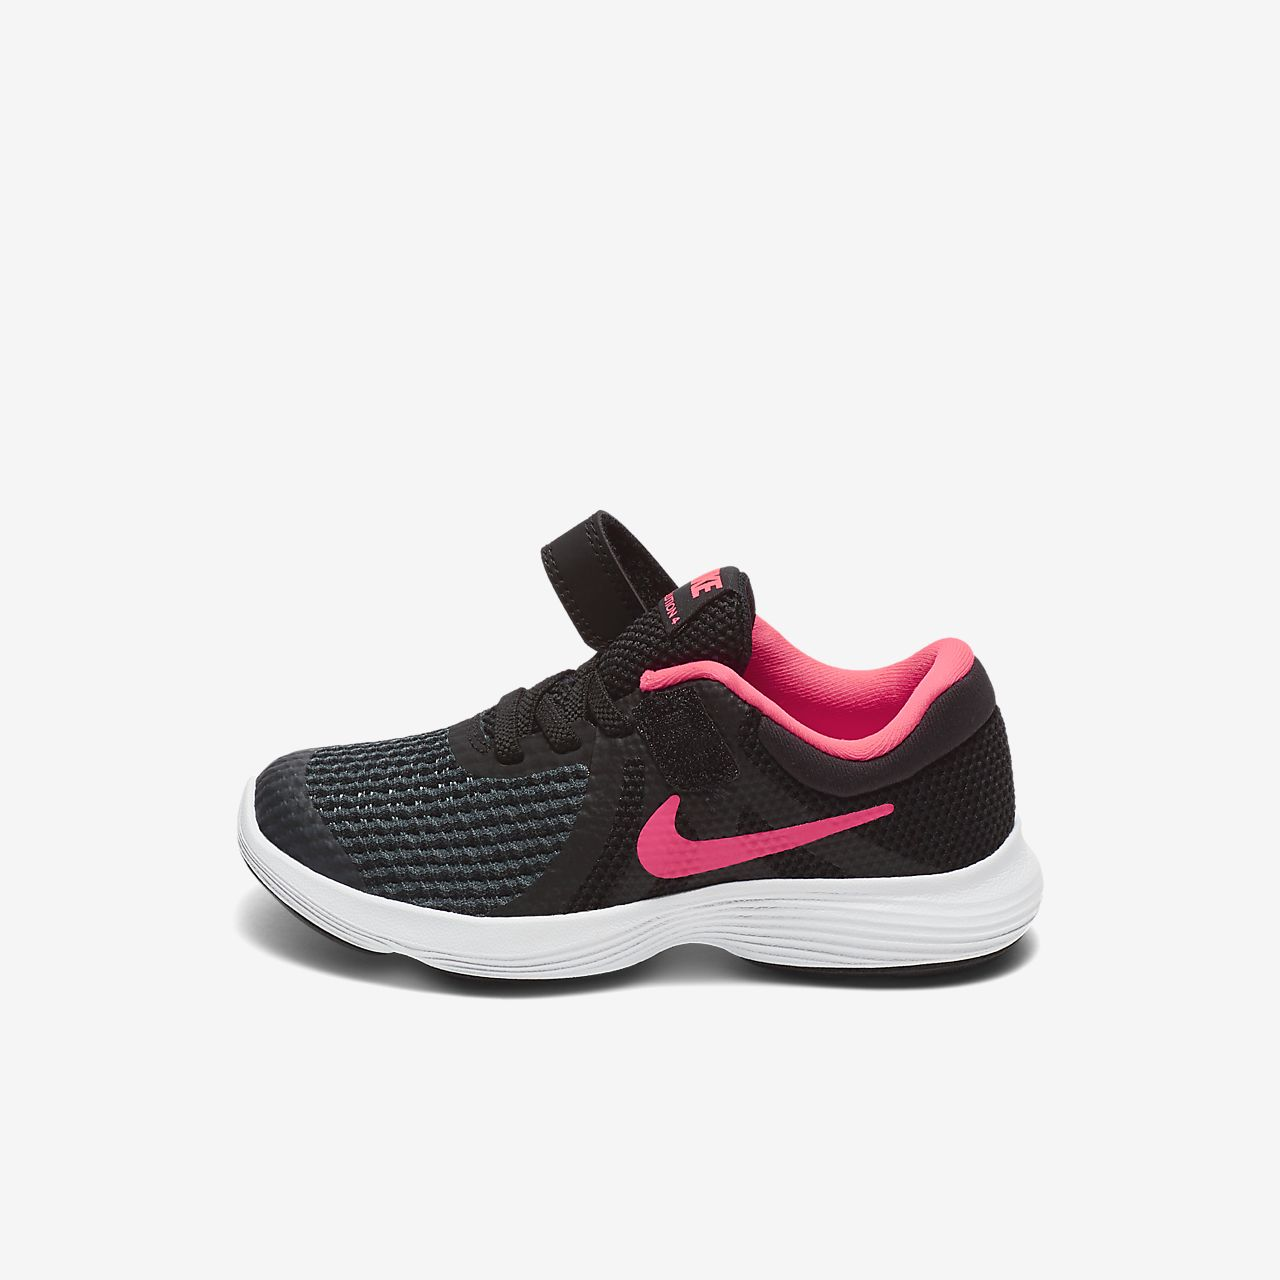 2aaf15b2c4e Nike Revolution 4 Younger Kids' Shoe. Nike.com GB